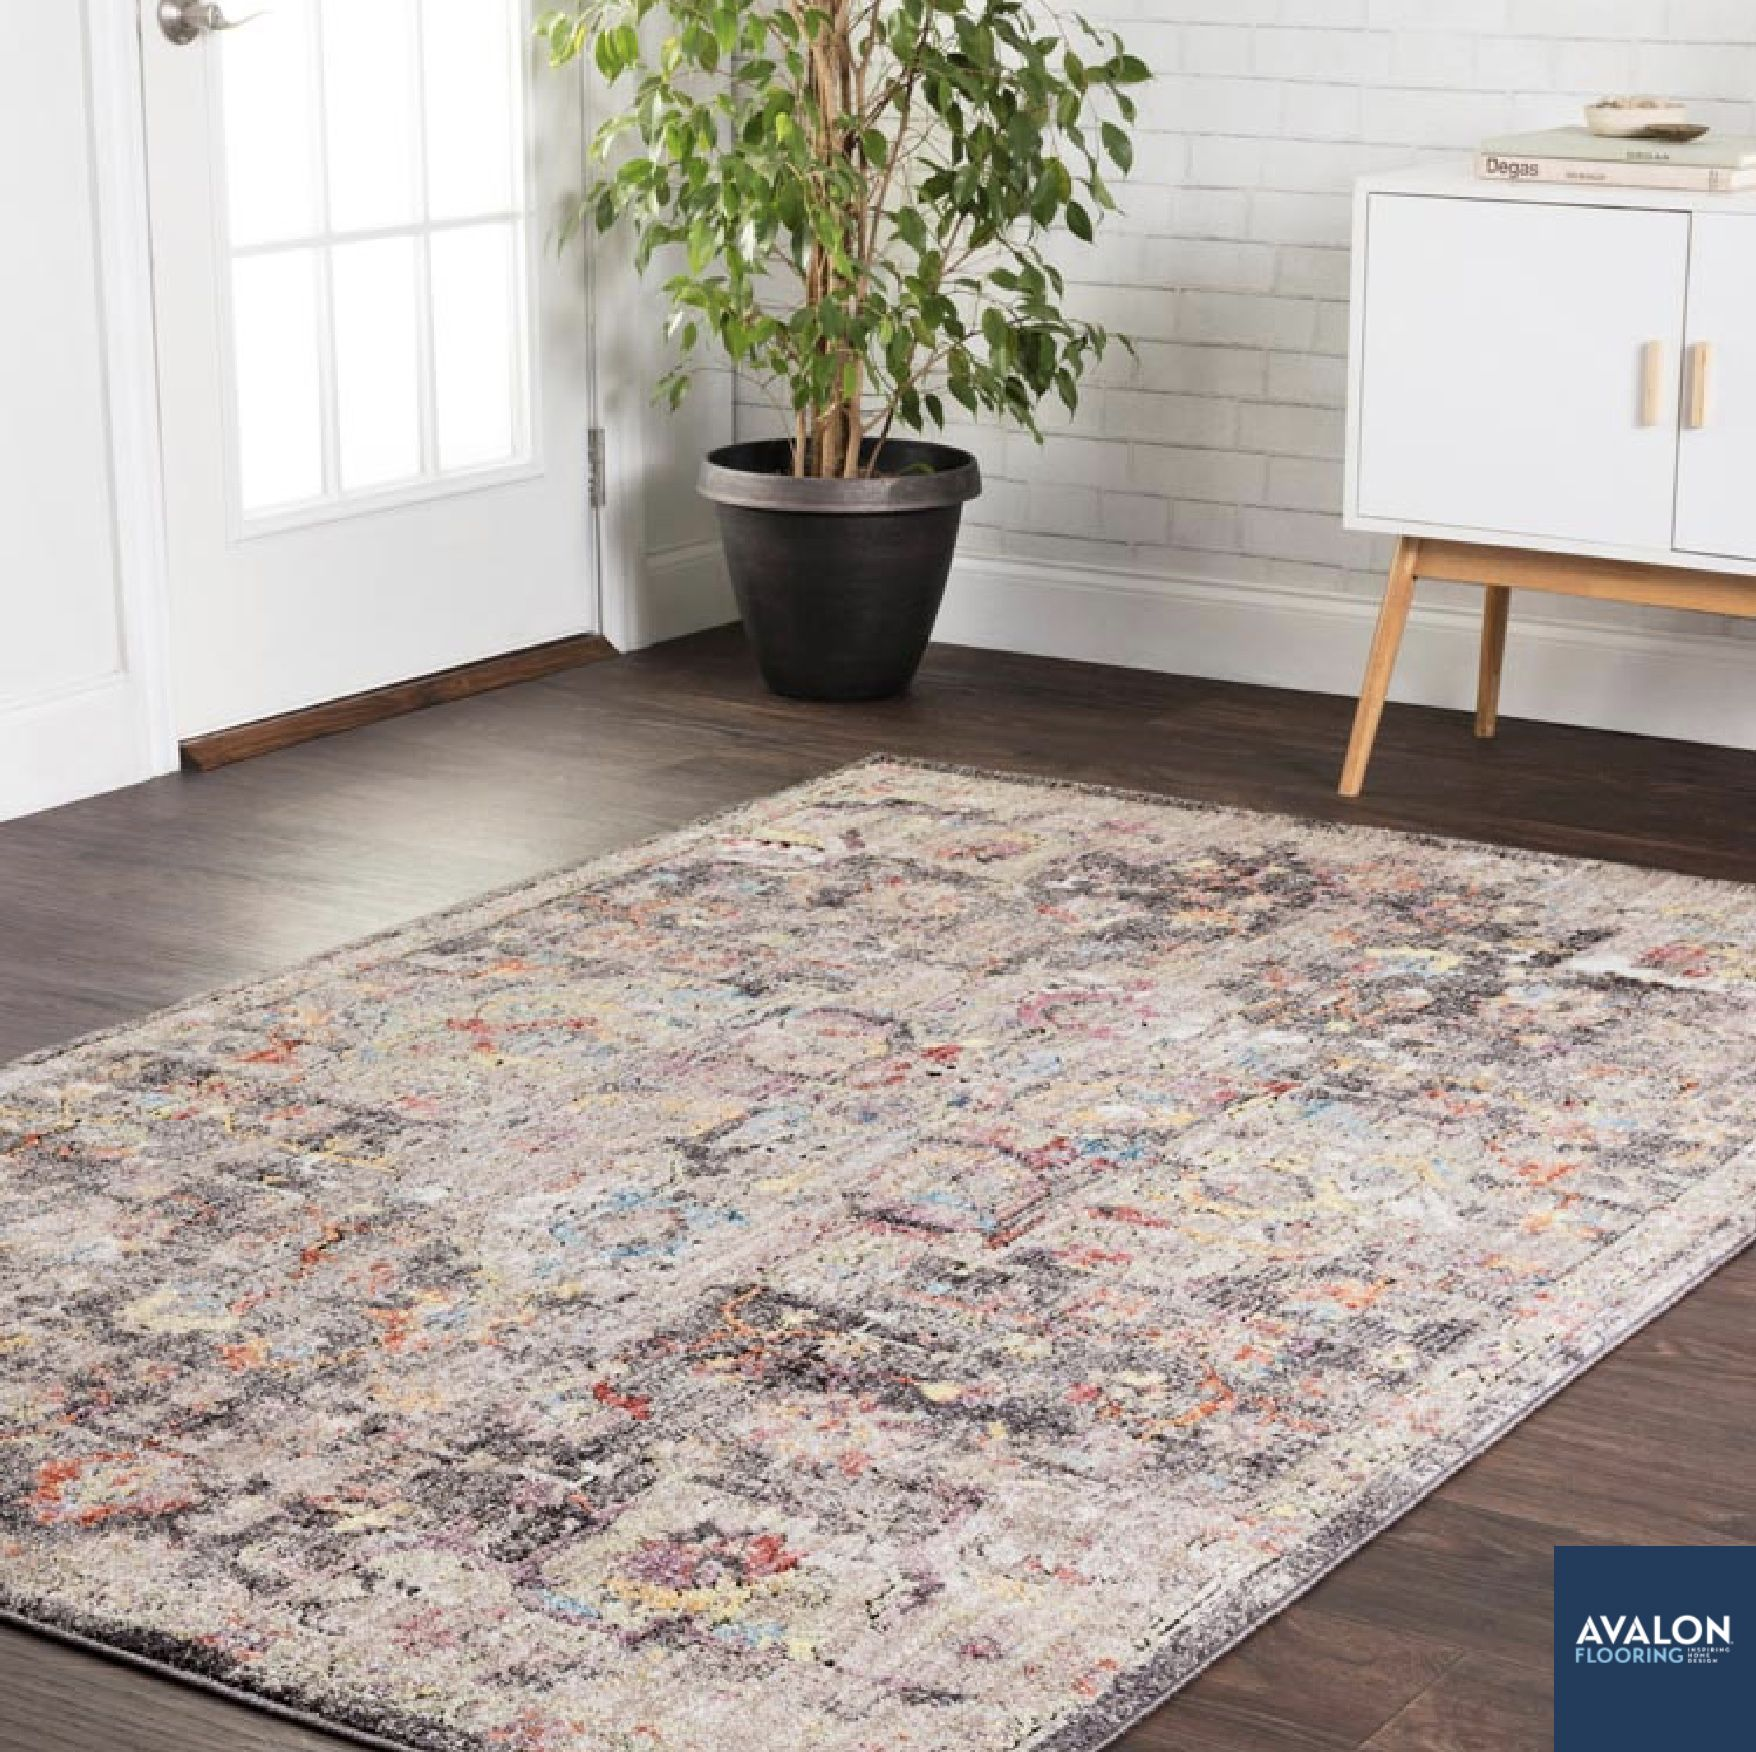 Pin On Avalon Area Rug Collection